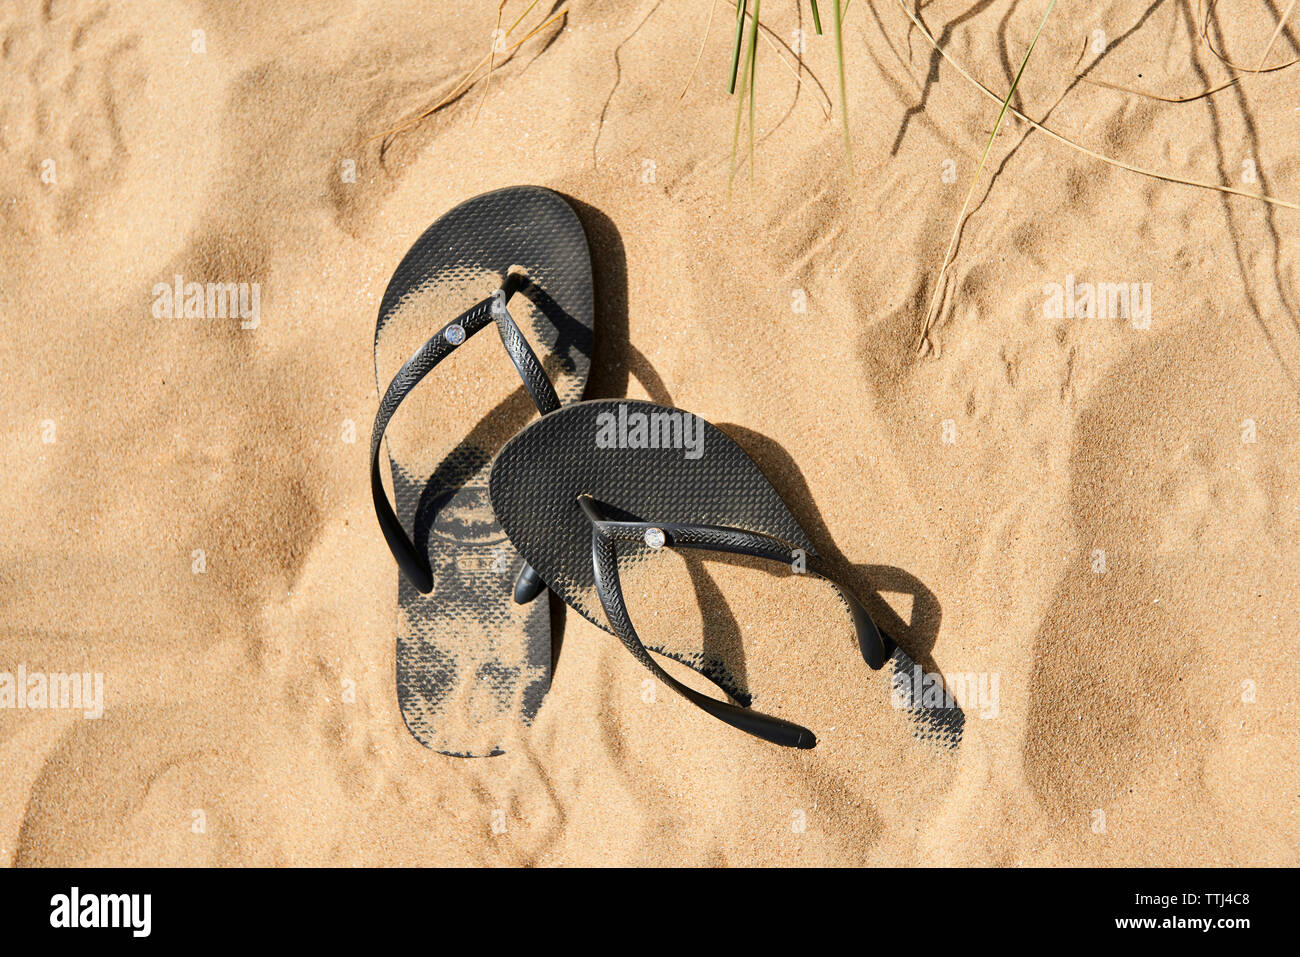 Flip flop sandals in the sand - Stock Image